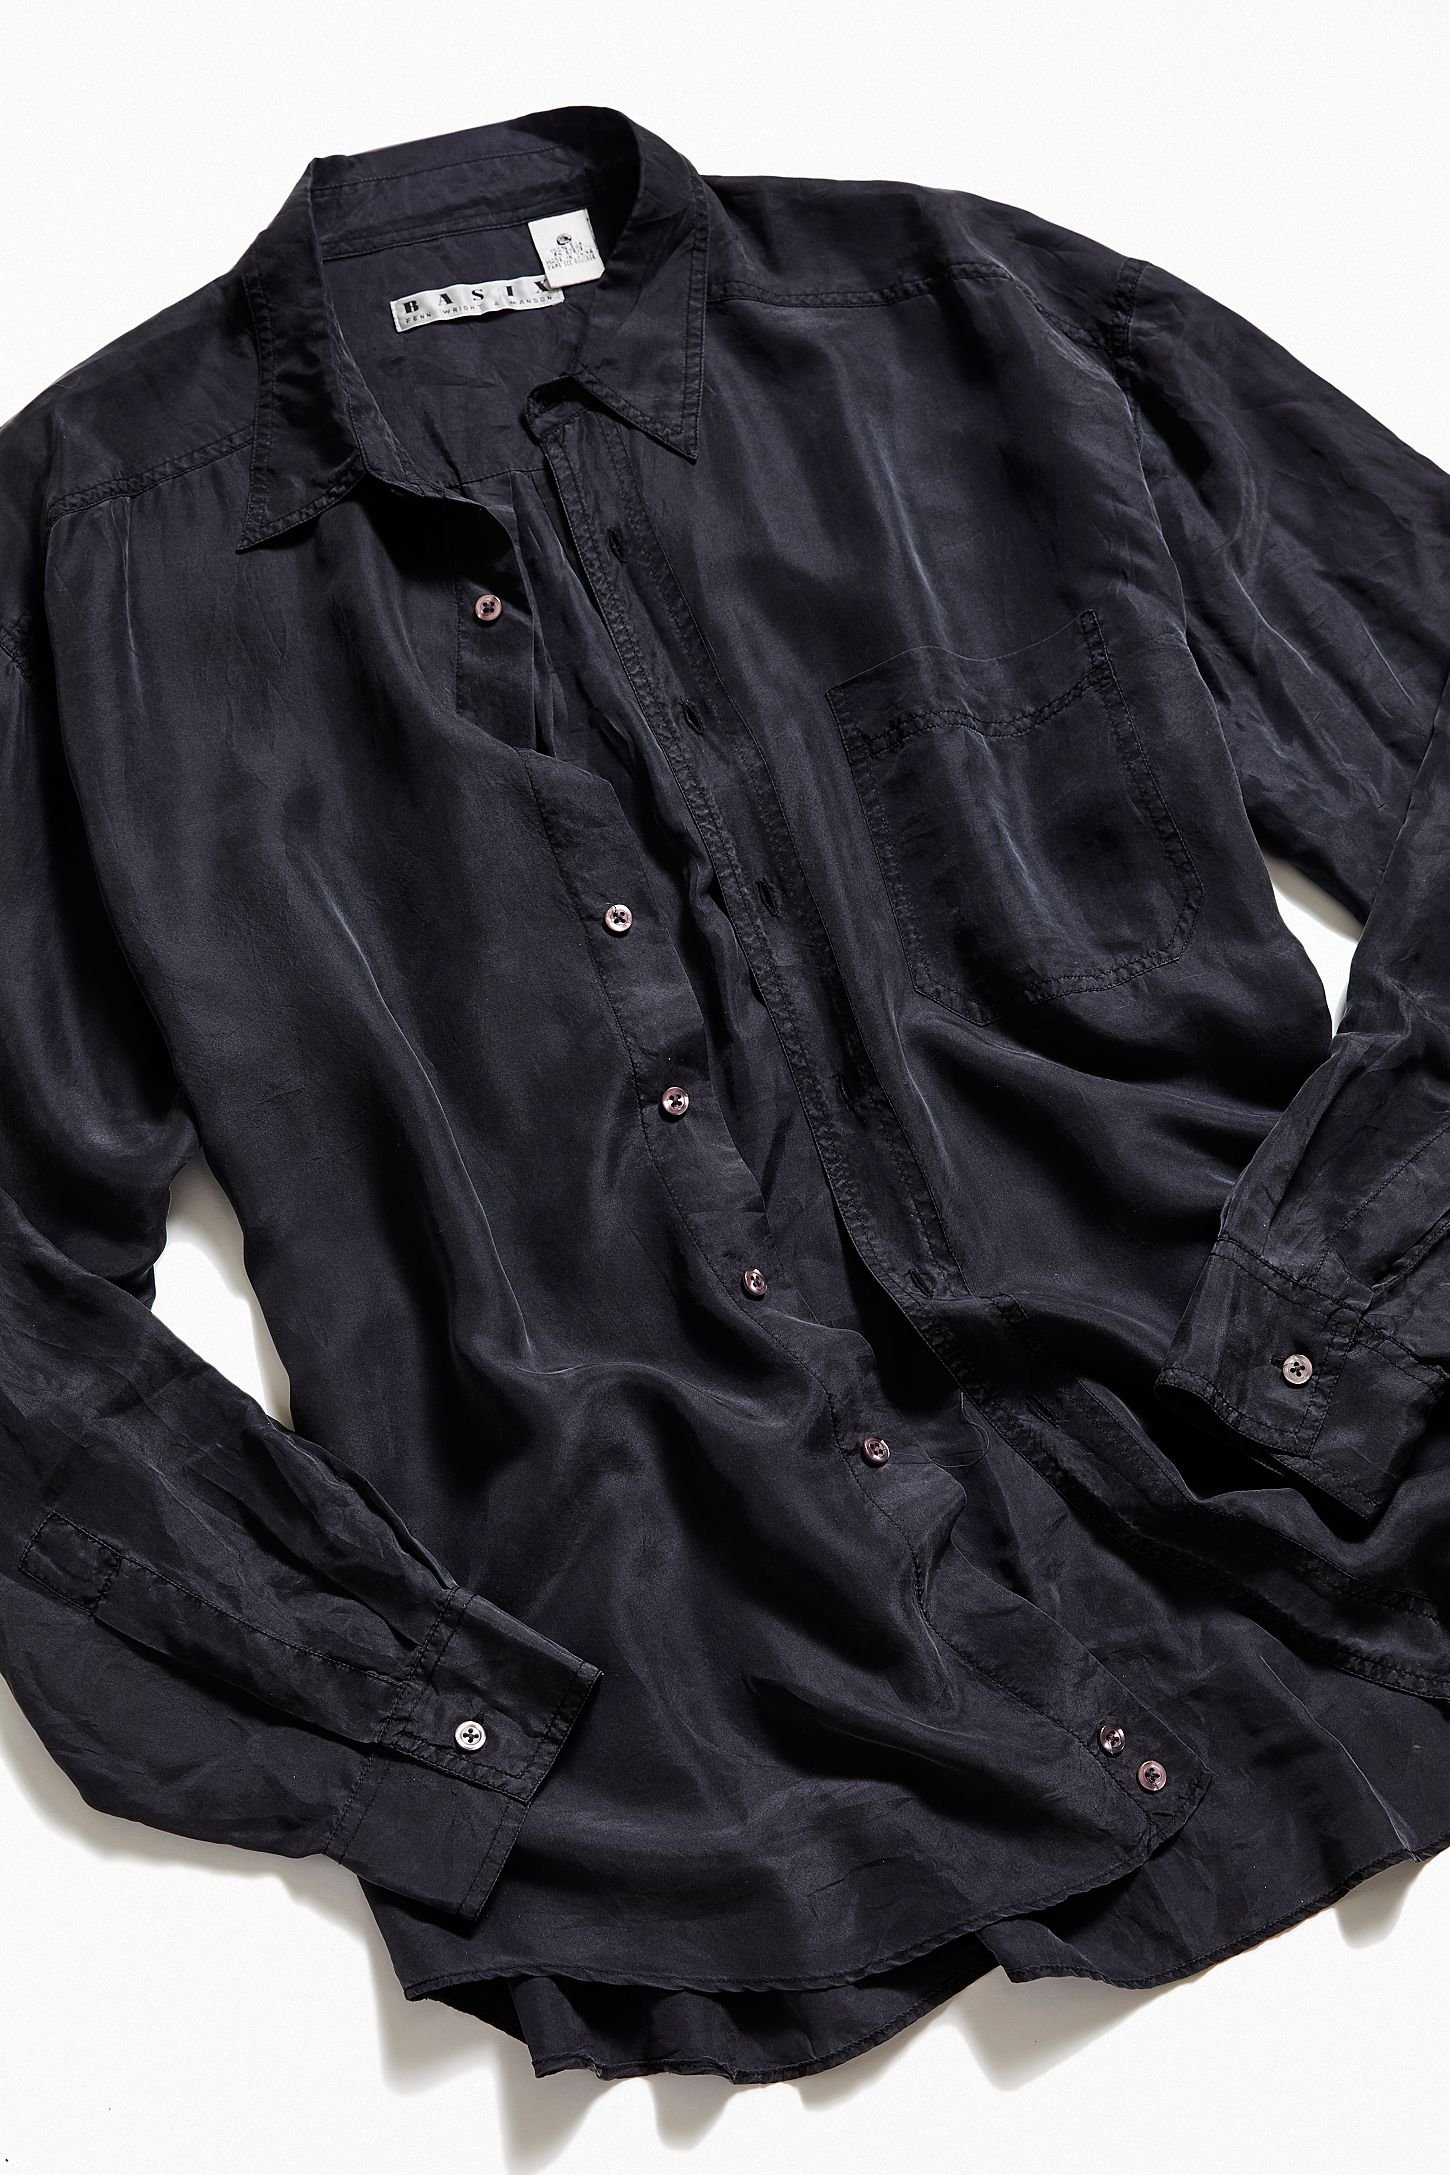 decdfde7 Vintage Black Silk Button-Down Shirt. Tap image to zoom. Hover to zoom.  Double Tap to Zoom